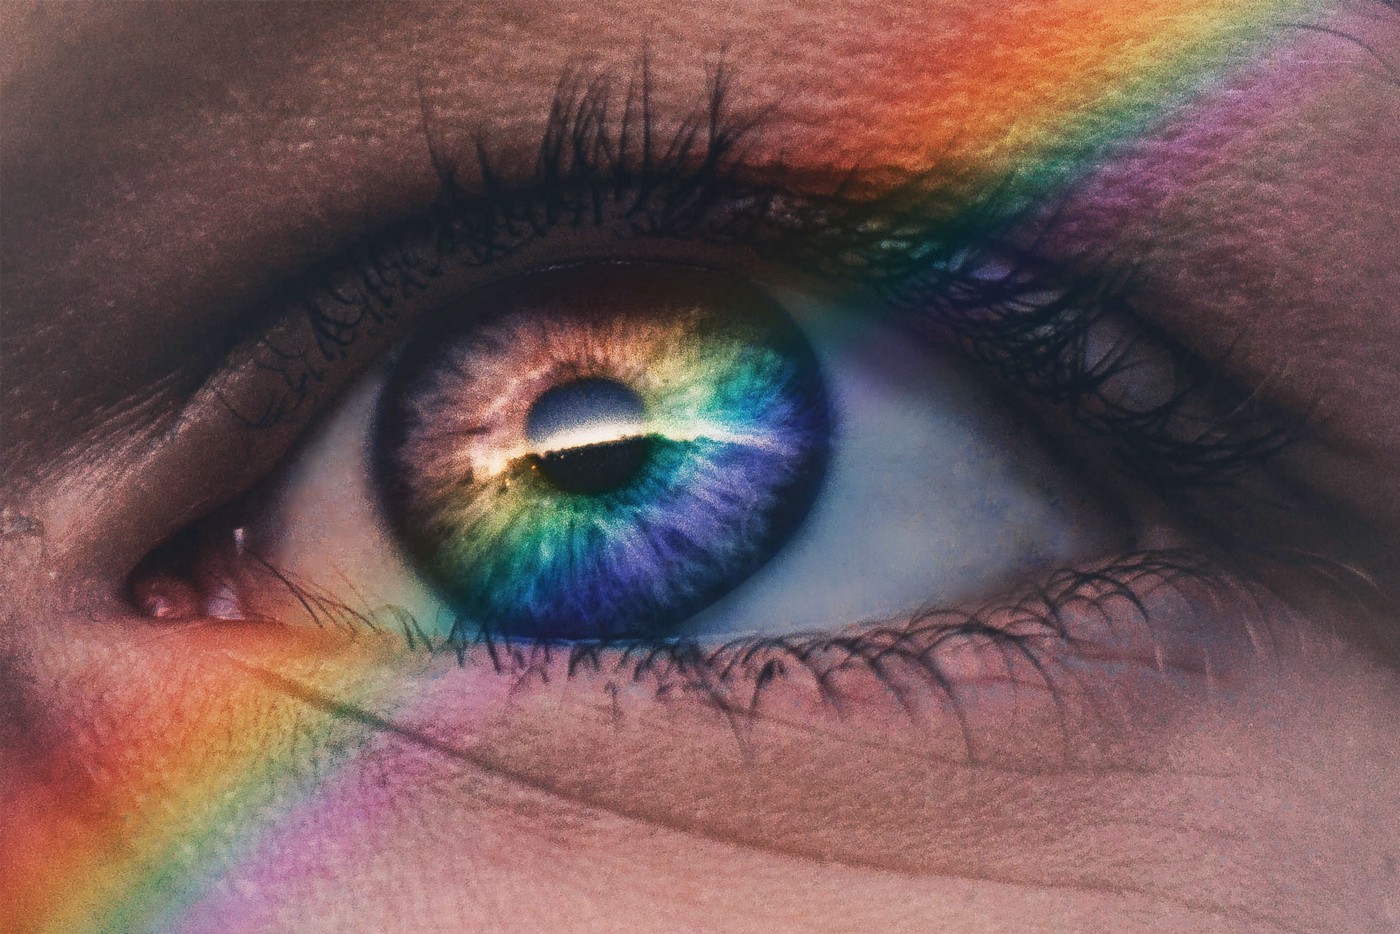 A woman sees all of the colors of the rainbow after her third eye opens.